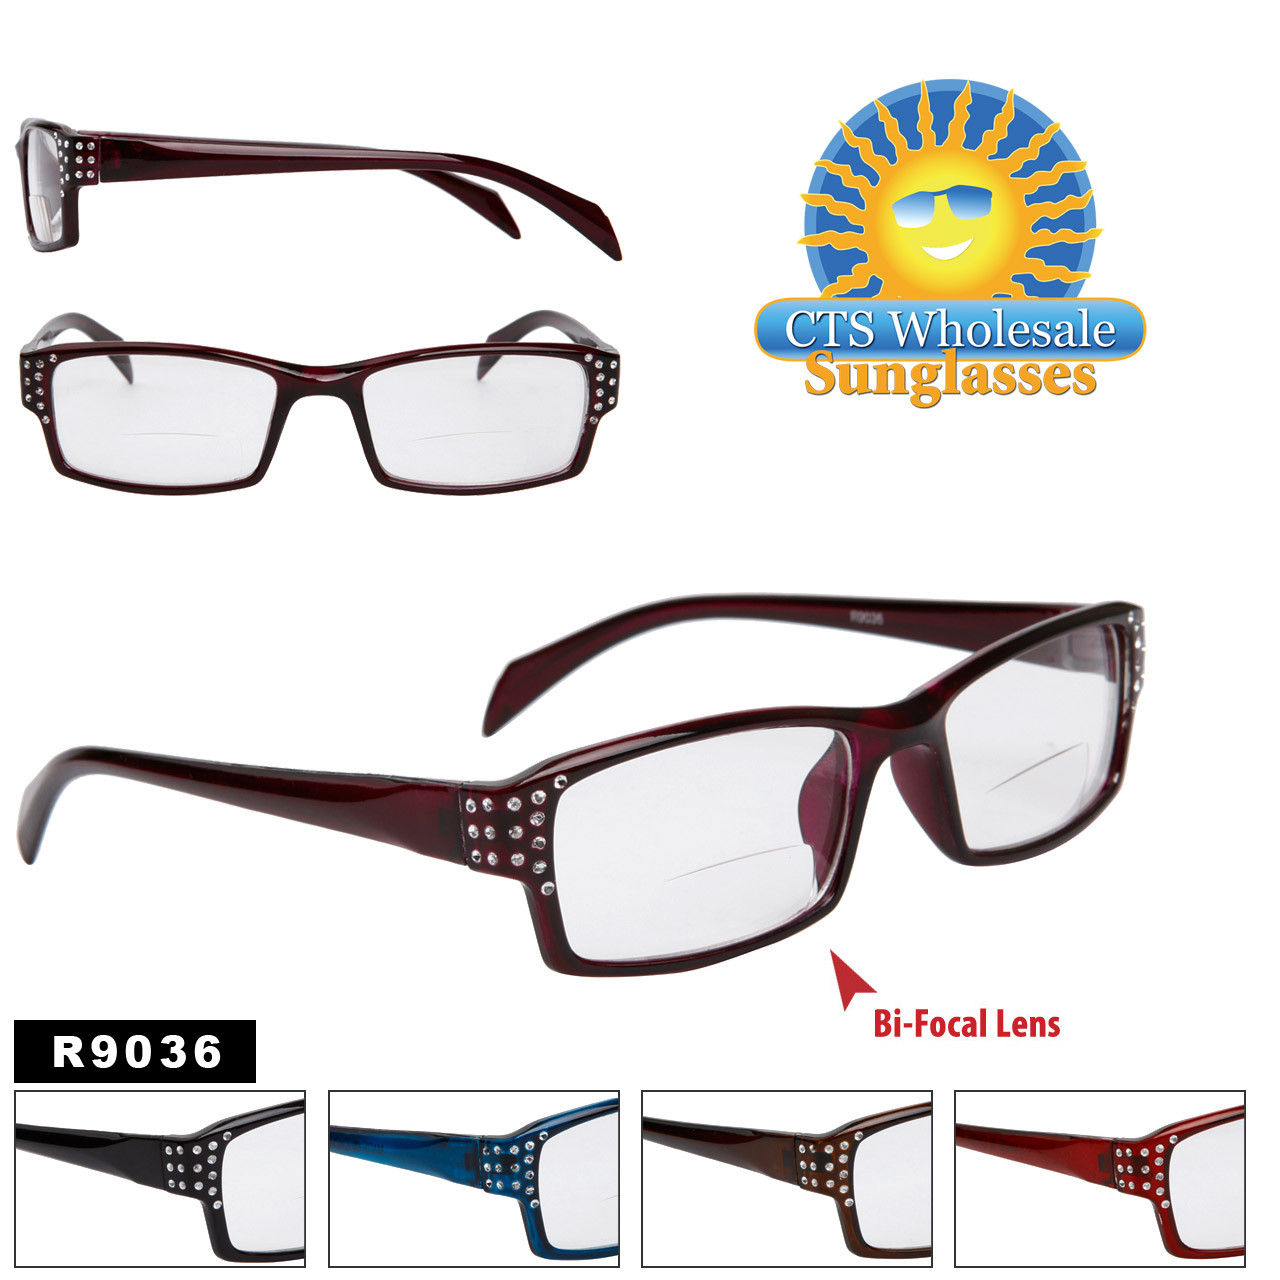 Bi-Focal Reading Glasses - R9036 (12 pcs.) Assorted Colors ~ Lens Strengths +1.00—+3.50